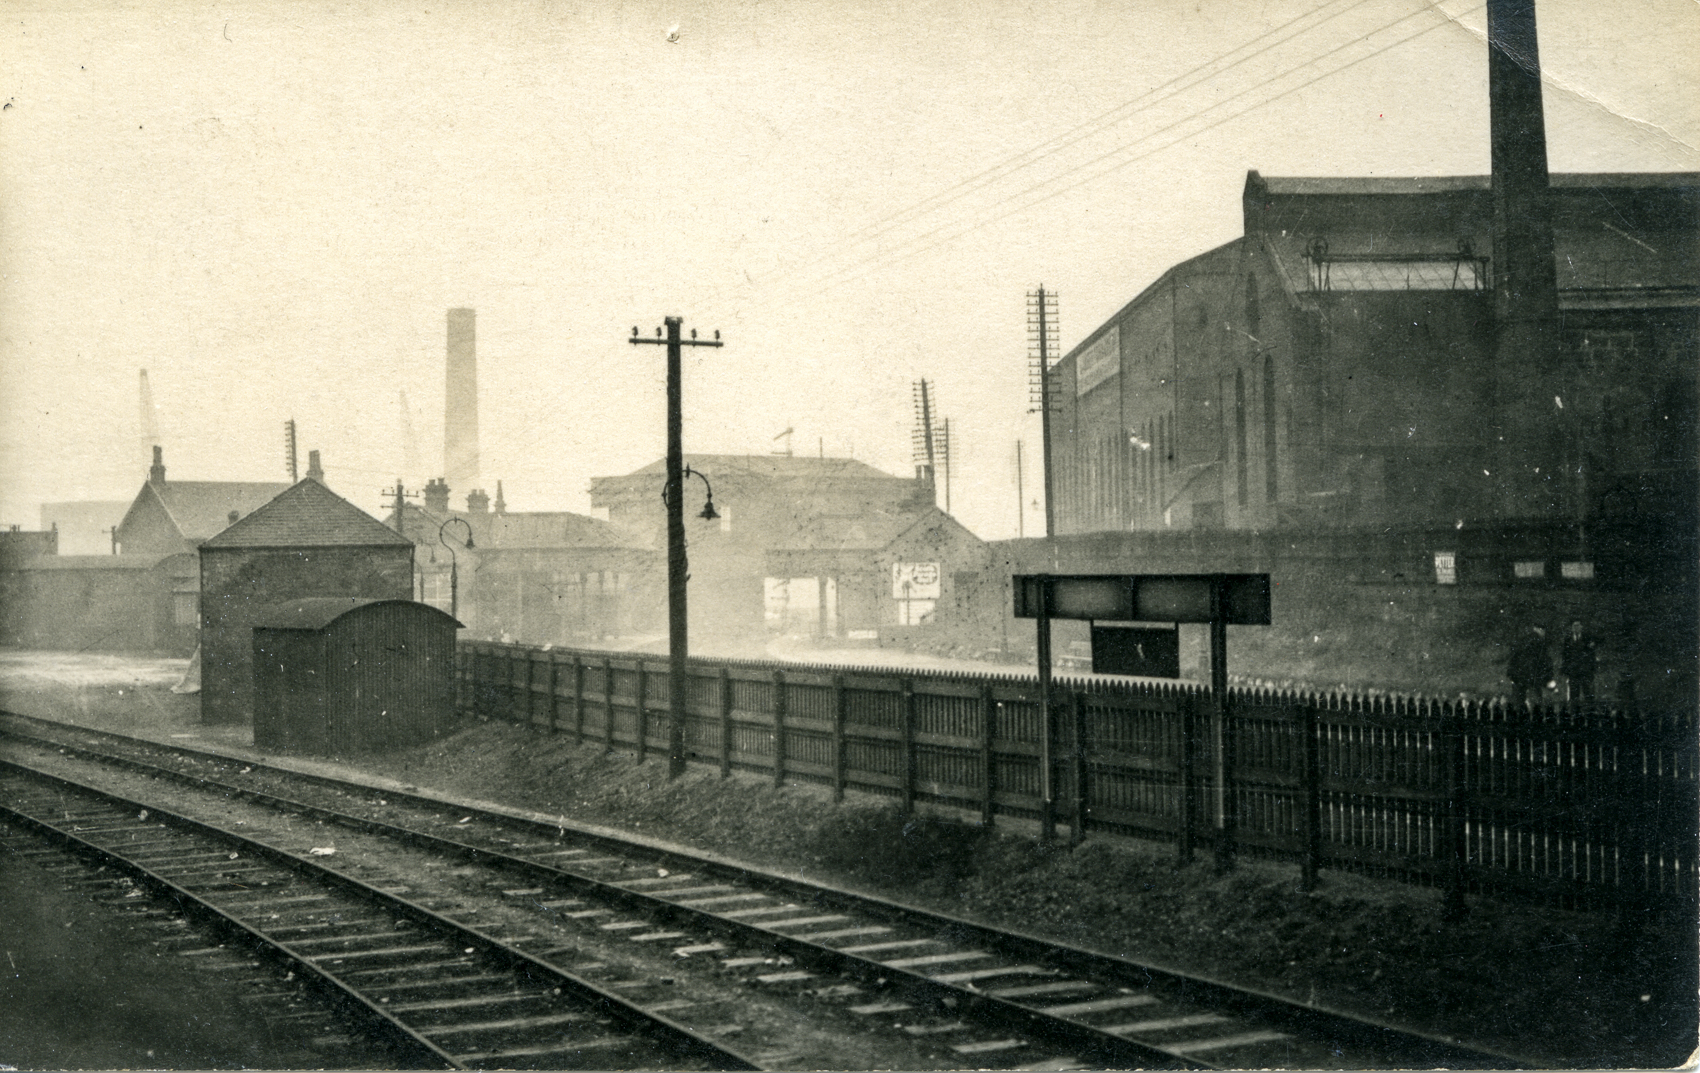 A rare picture postcard view of Coatbridge Sunnyside Station from around 1900. The Sunnyside Engine Works are on the right. The chimney in the distance belongs to the Summerlee Iron Works.